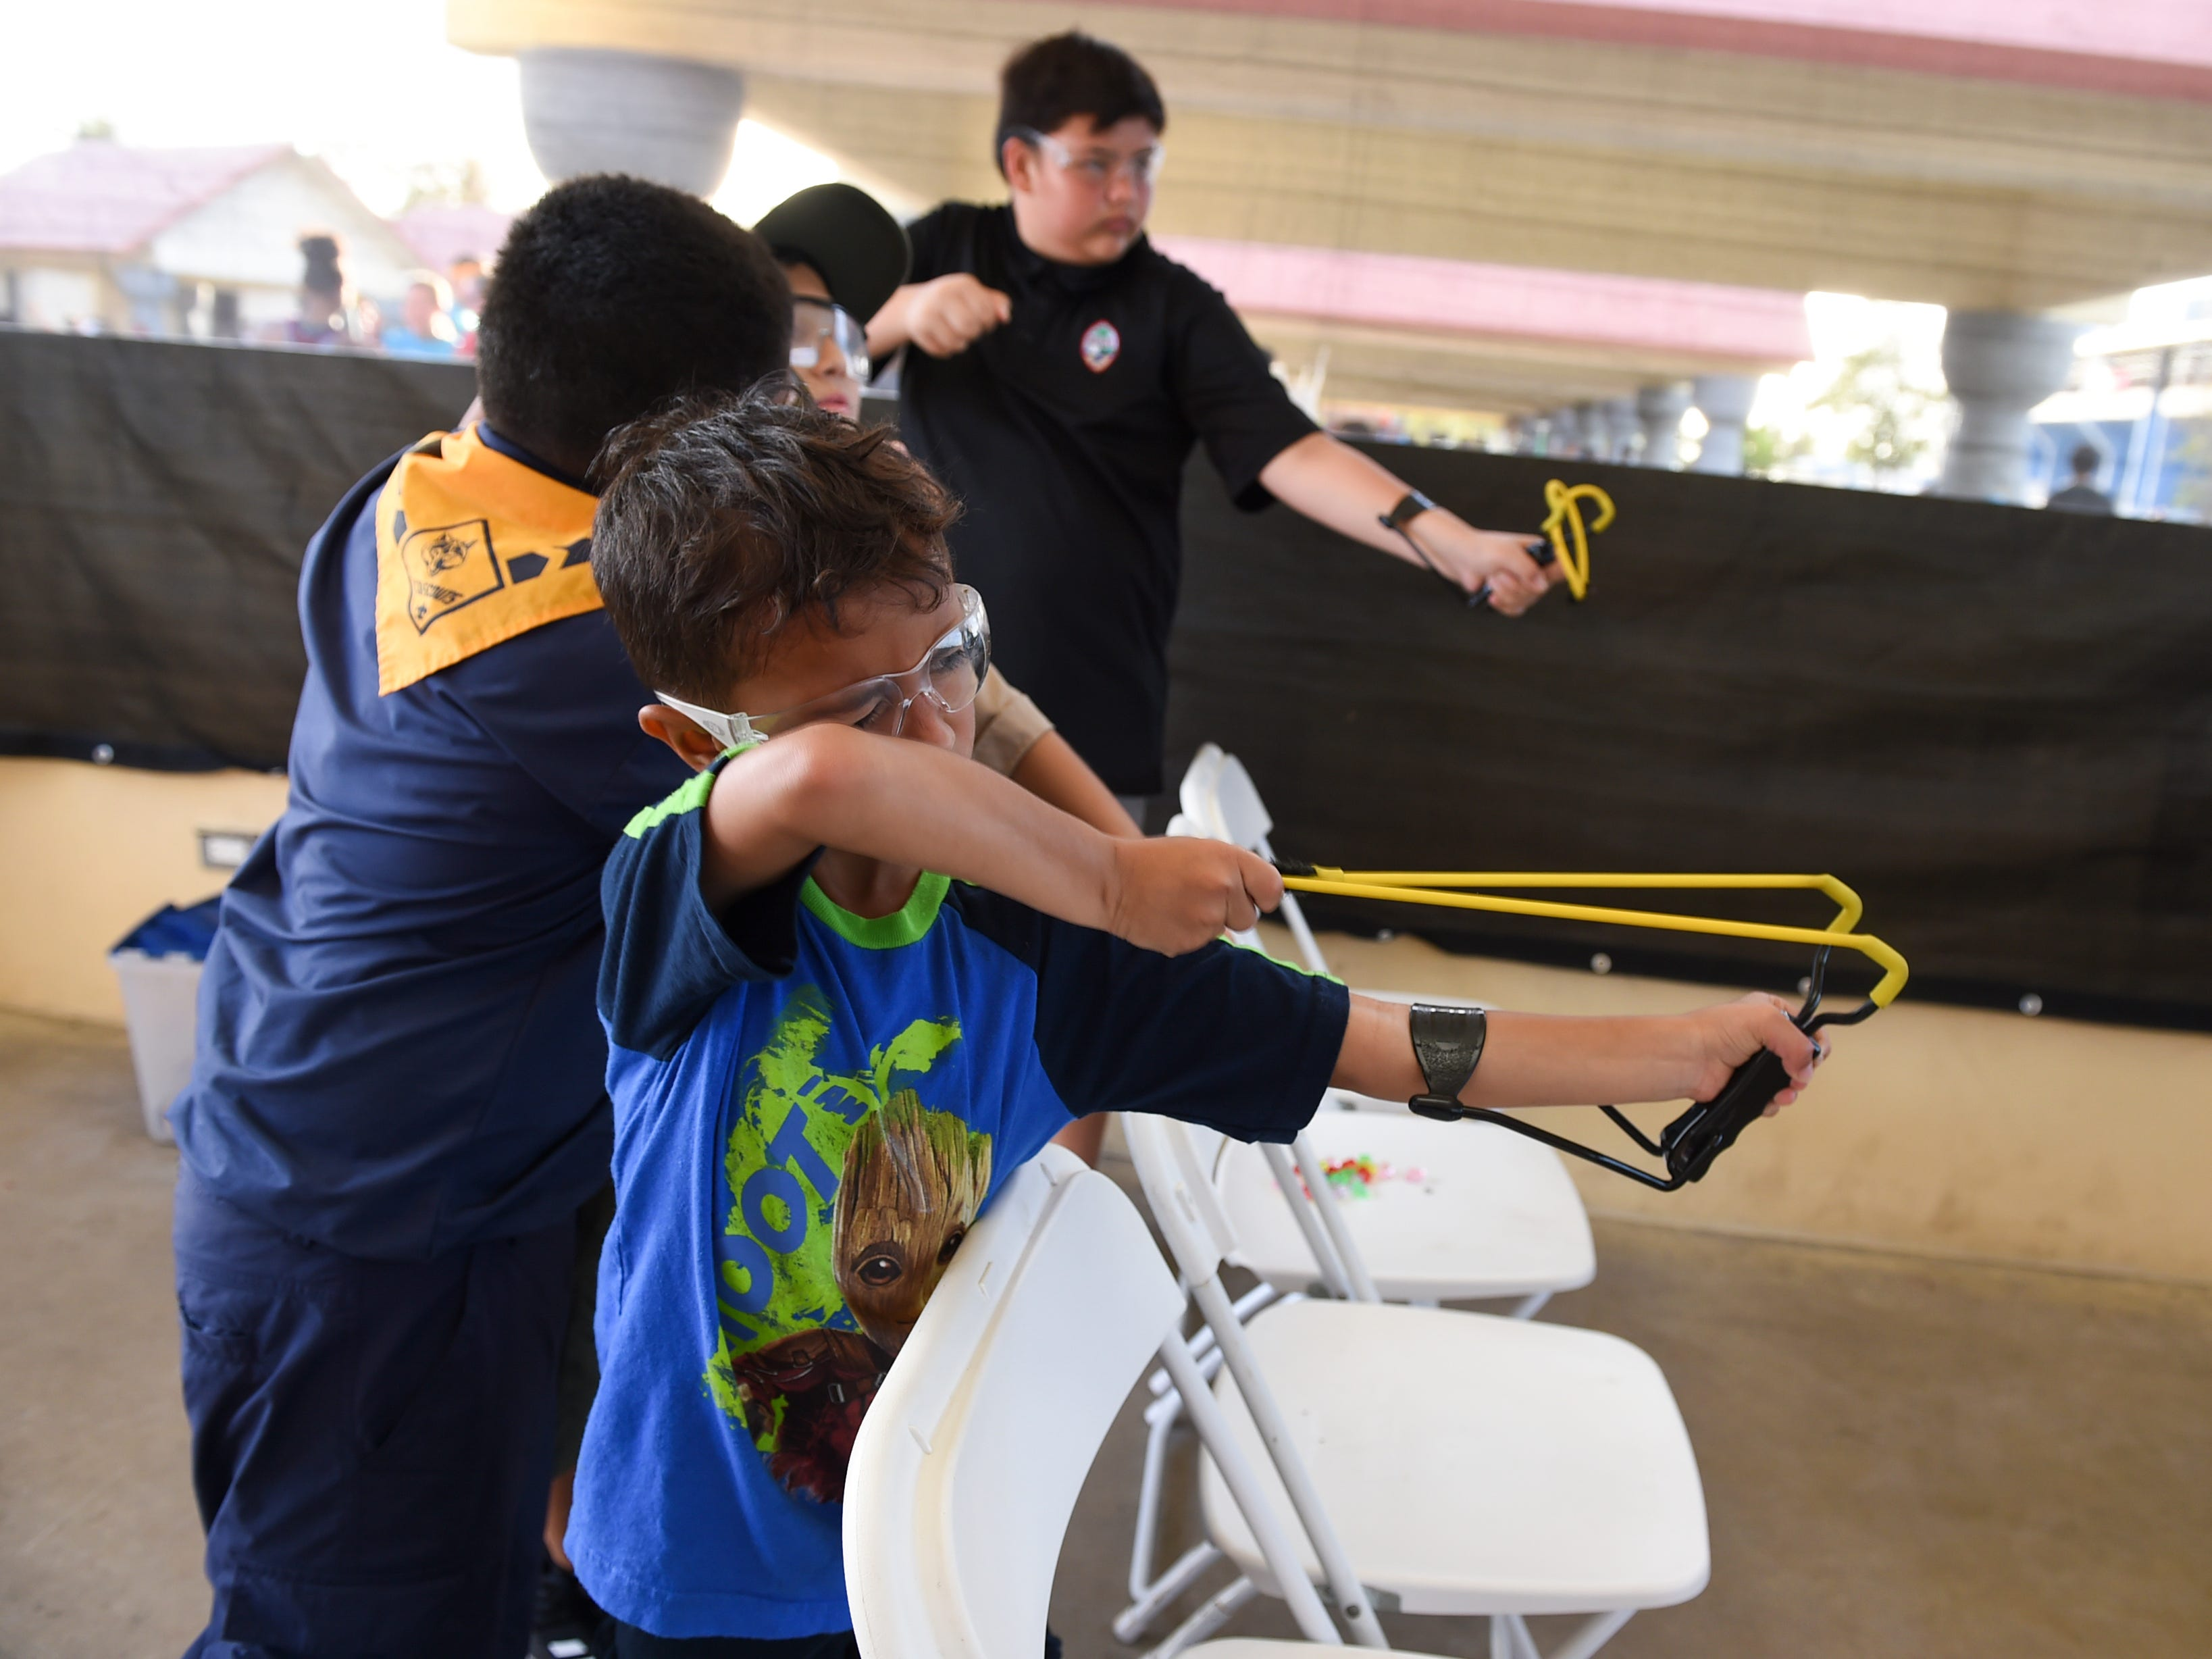 Damian Pomare, 6, aims with a slingshot in the Boy Scouts of America Kid Zone booth during the Bank of Guam Ifit Run and Block Party at Chamorro Village in Hagåtña, March 9, 2019.